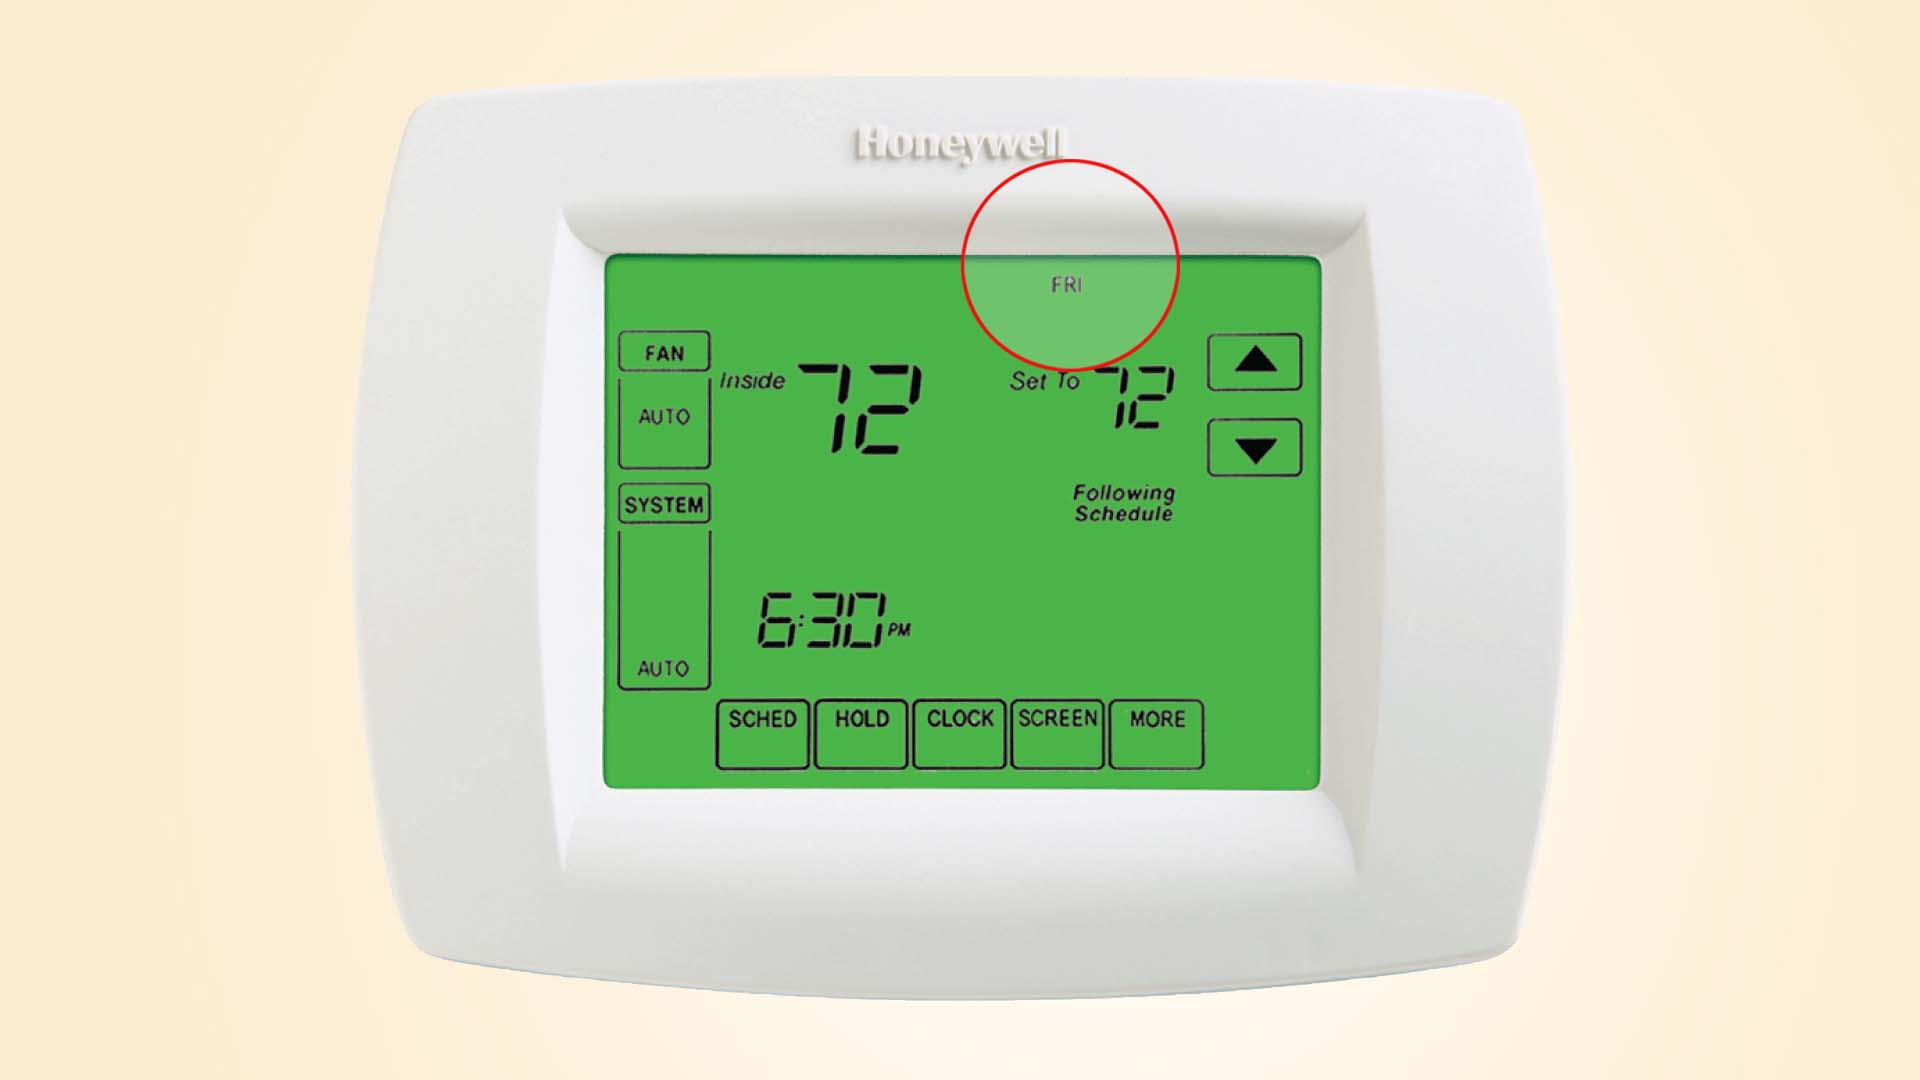 How To Change The Day For Honeywell Visionpro Thermostats